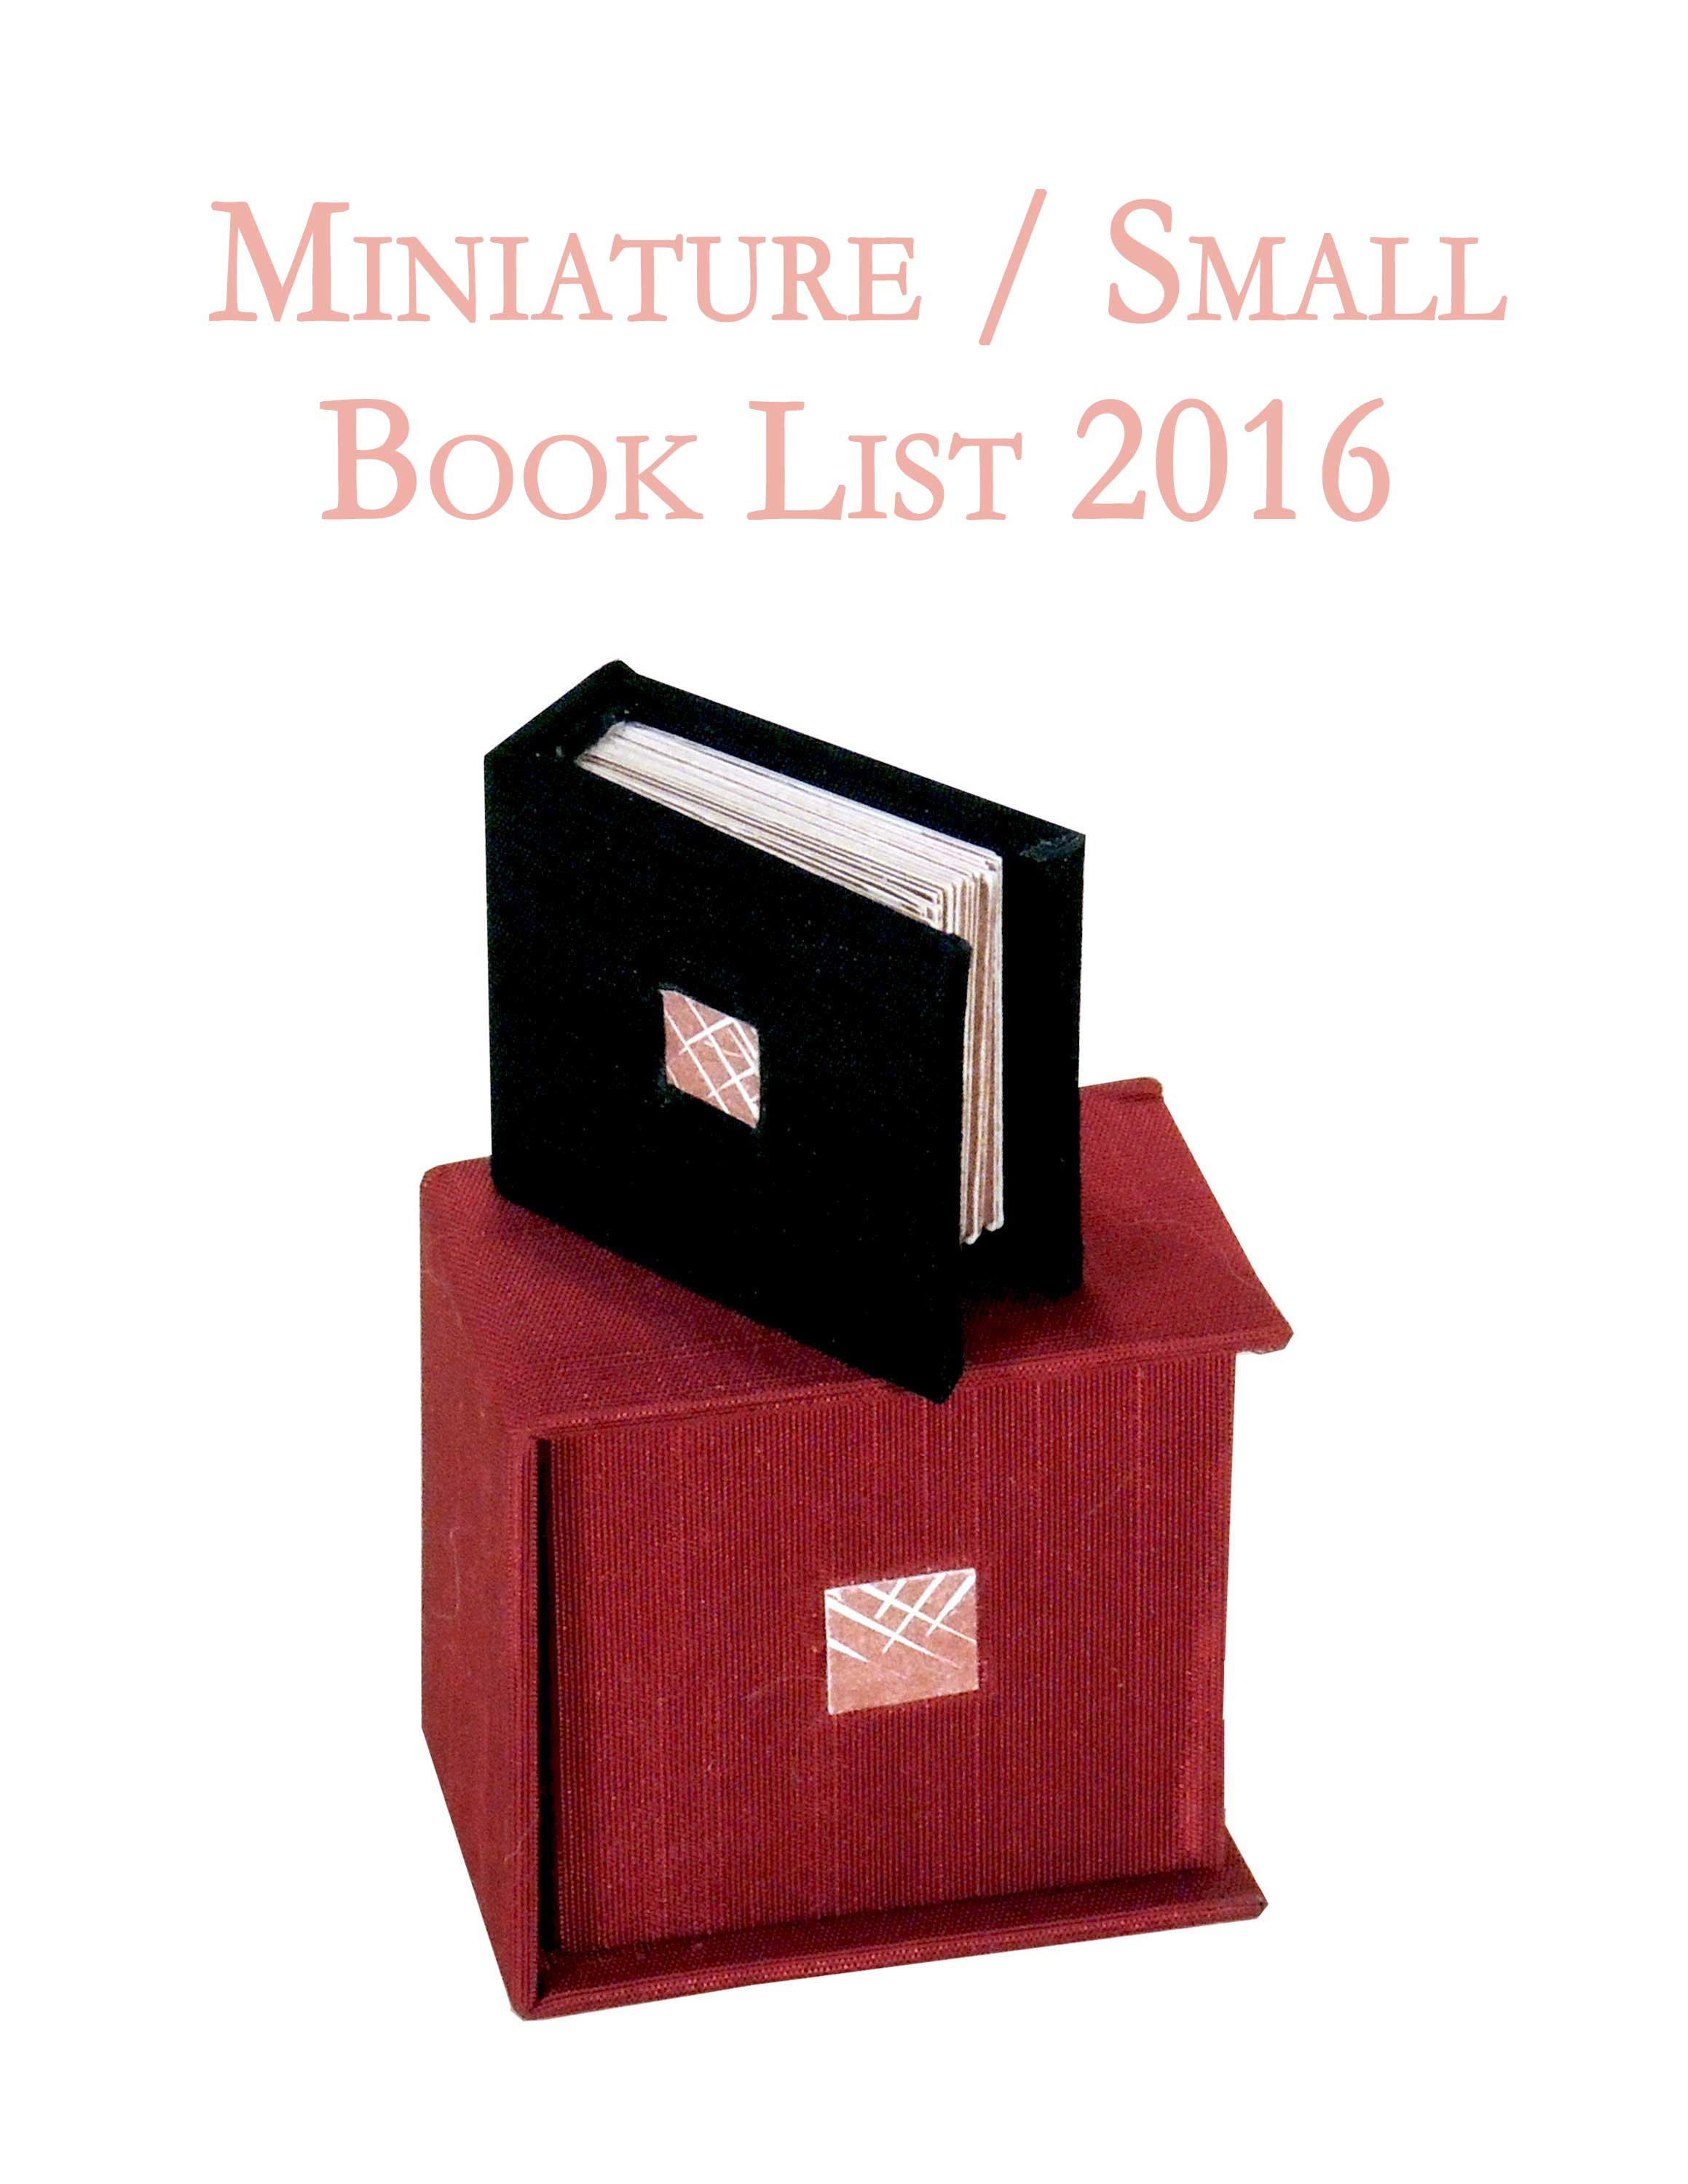 Miniature Book List 2016